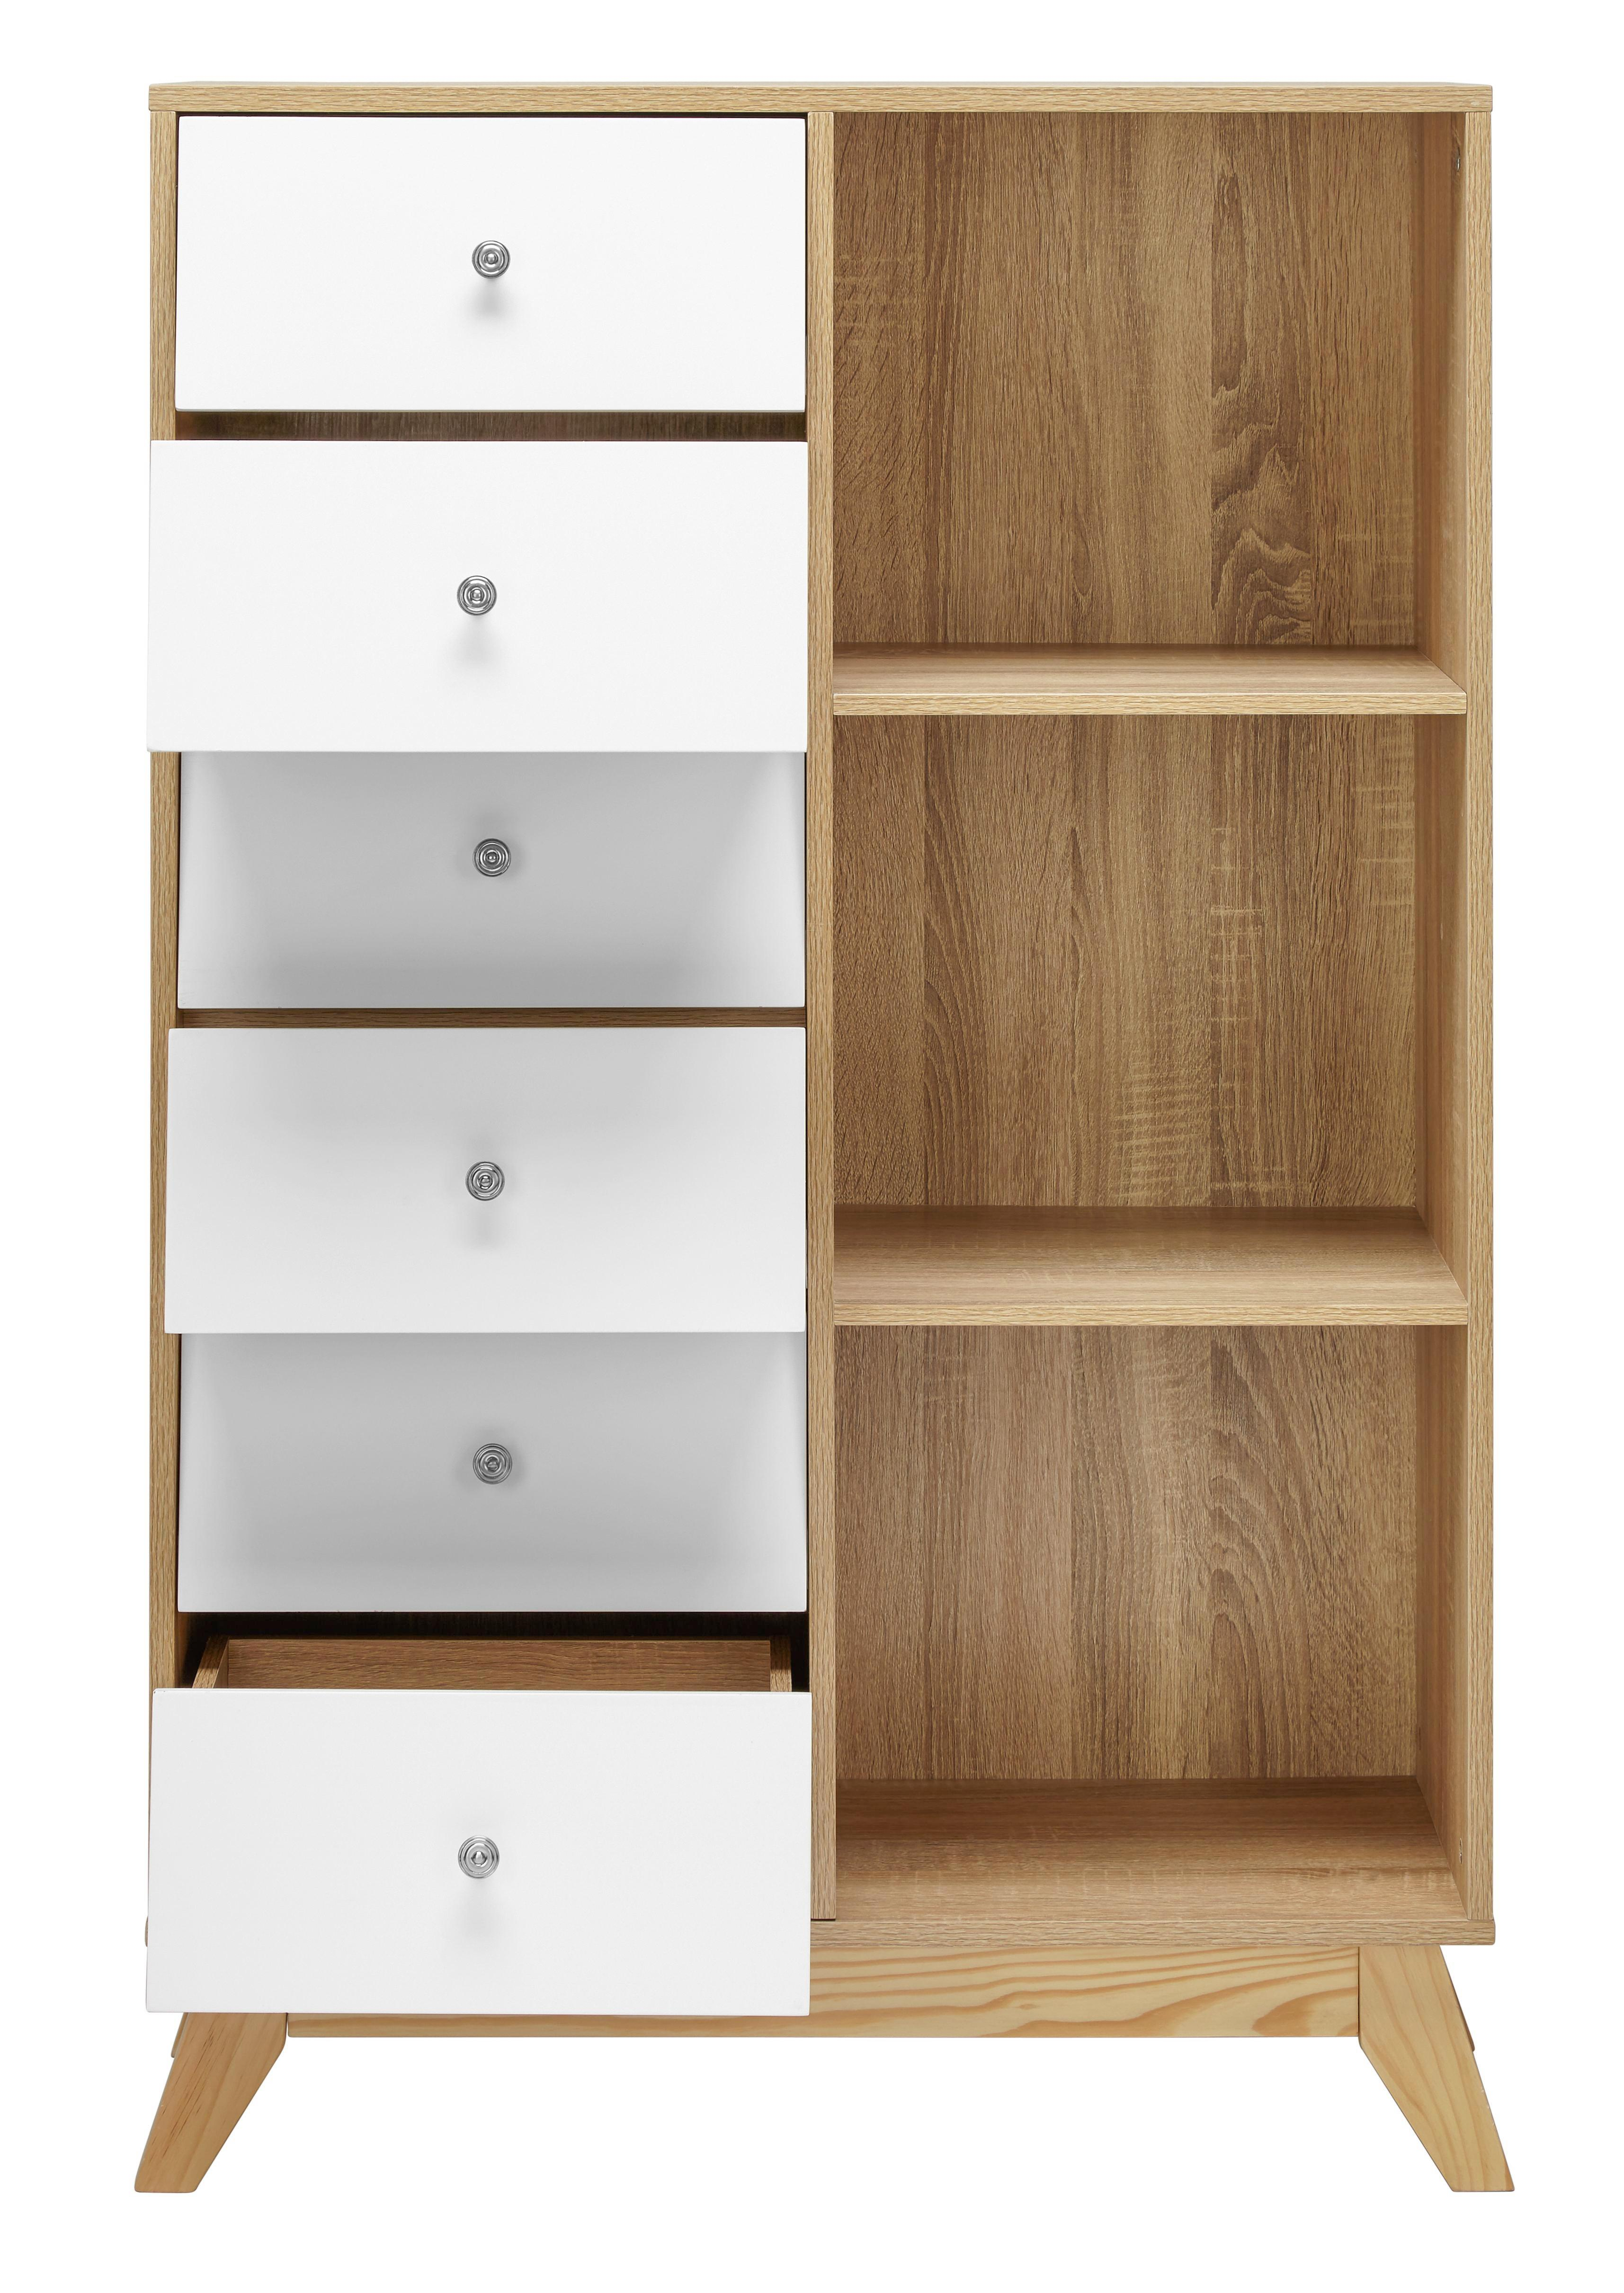 schrank 30x30 how do i set this with schrank 30x30 trendy luxaqua waschbecken zur wandmontage. Black Bedroom Furniture Sets. Home Design Ideas